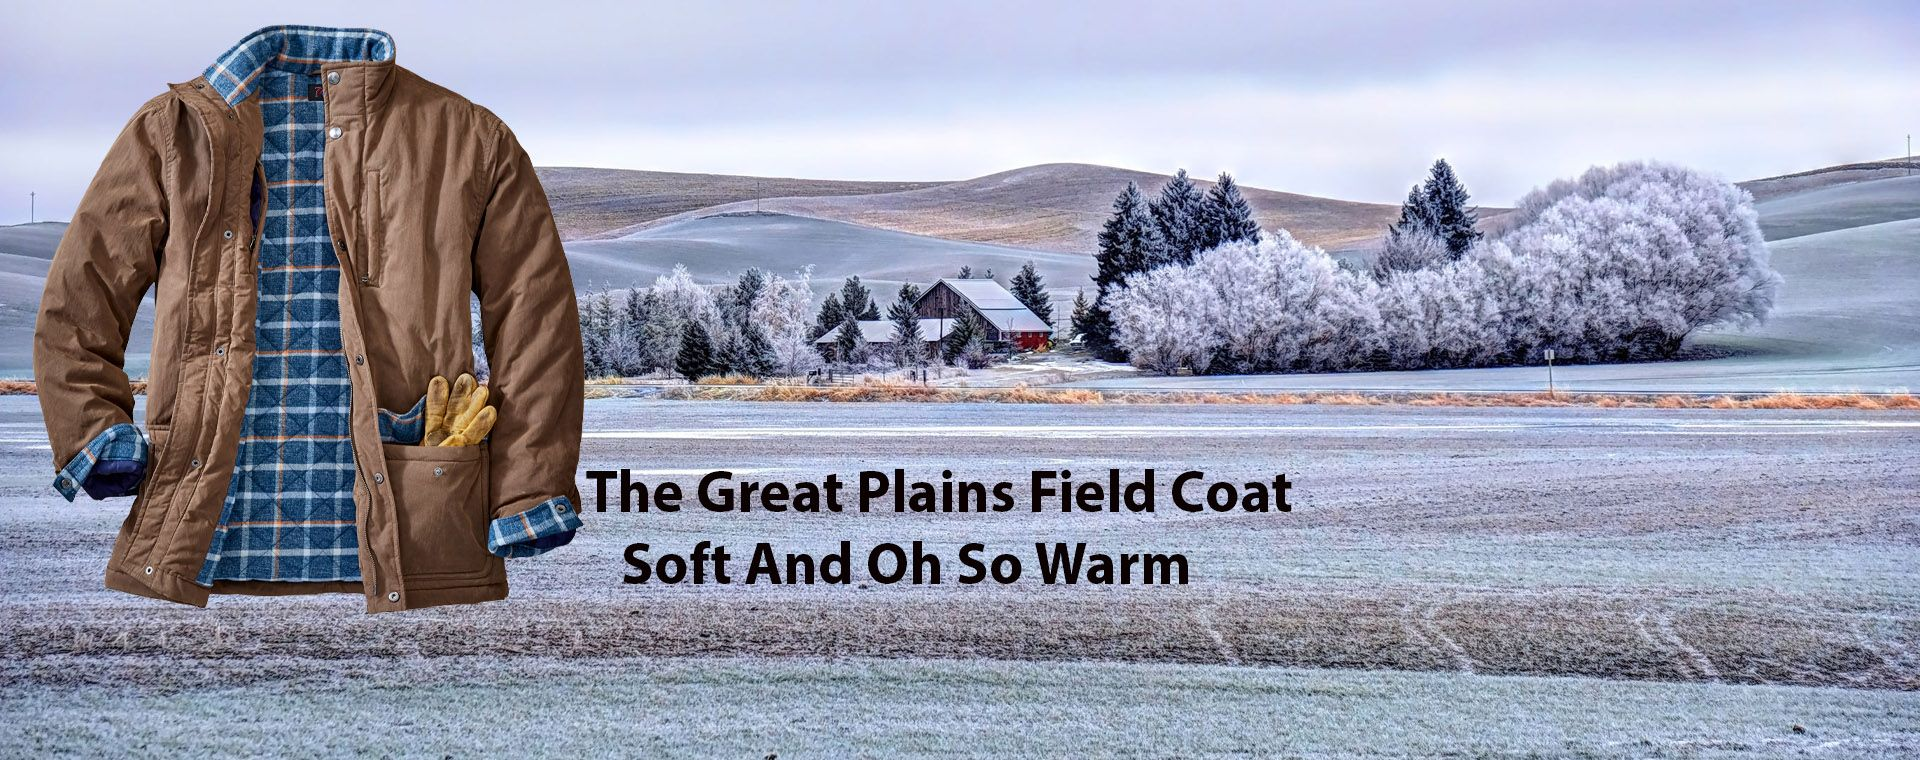 Great Plains Jacket